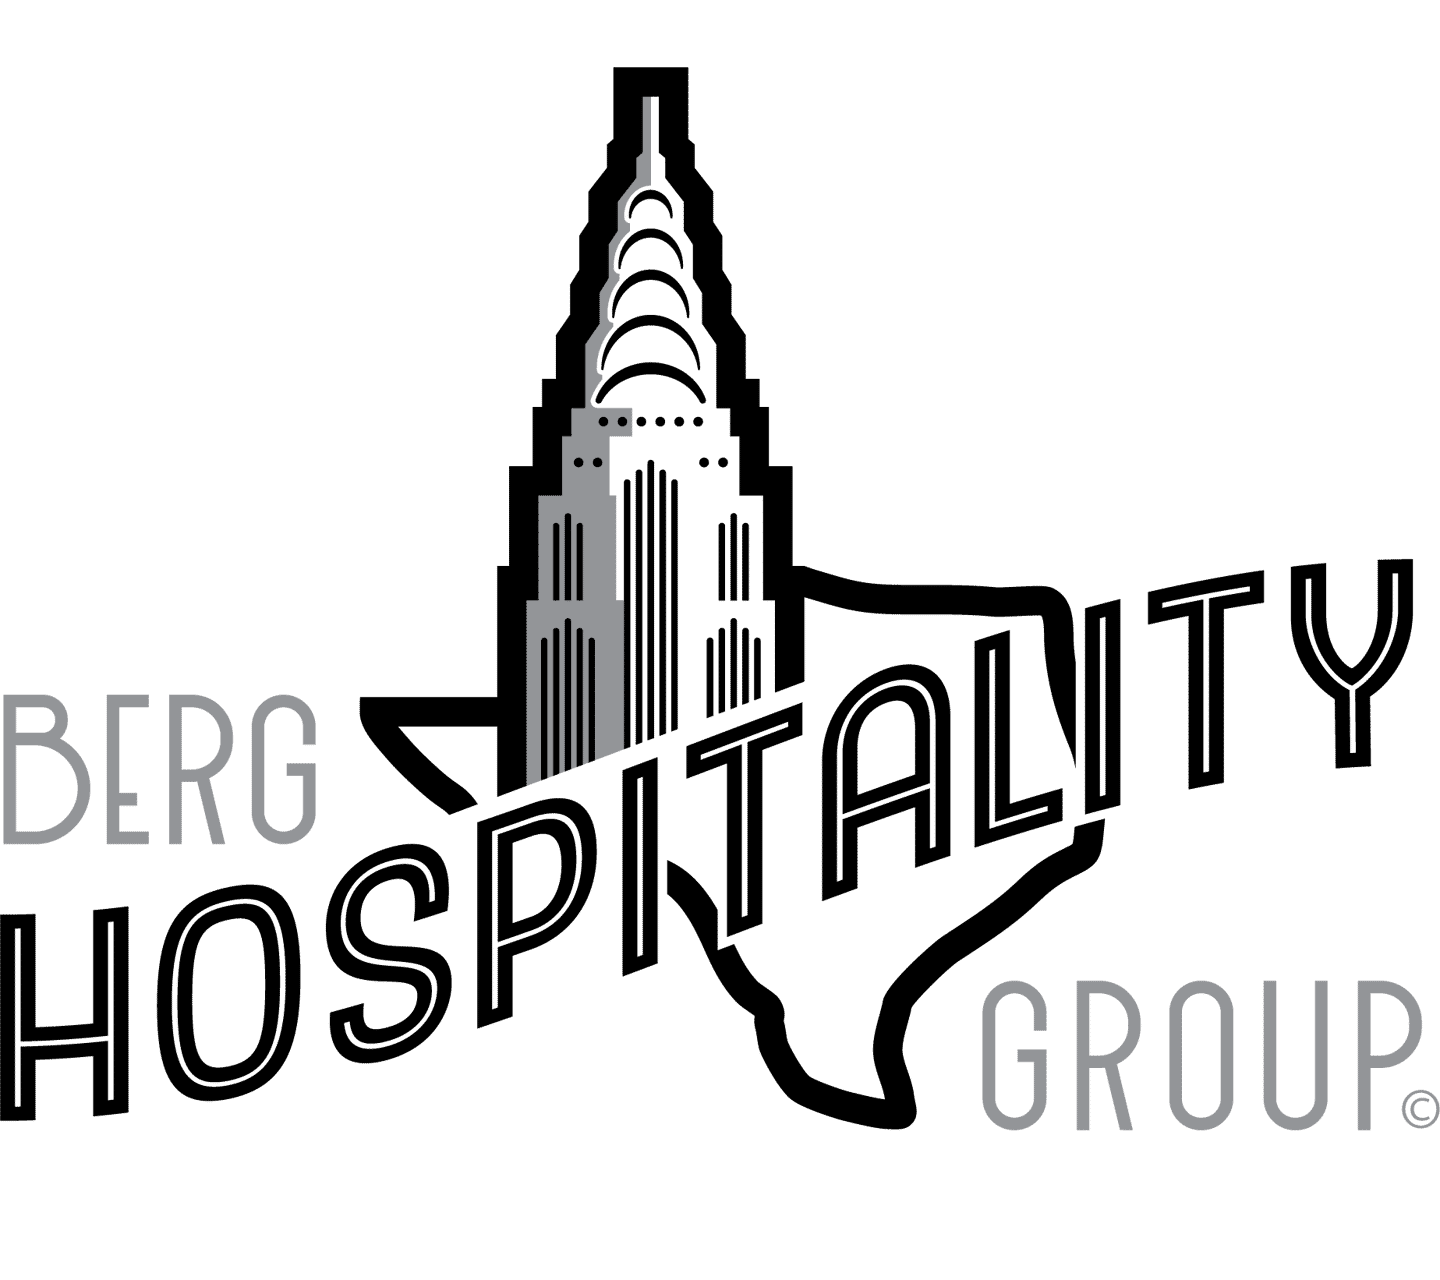 Berg Hospitality Group